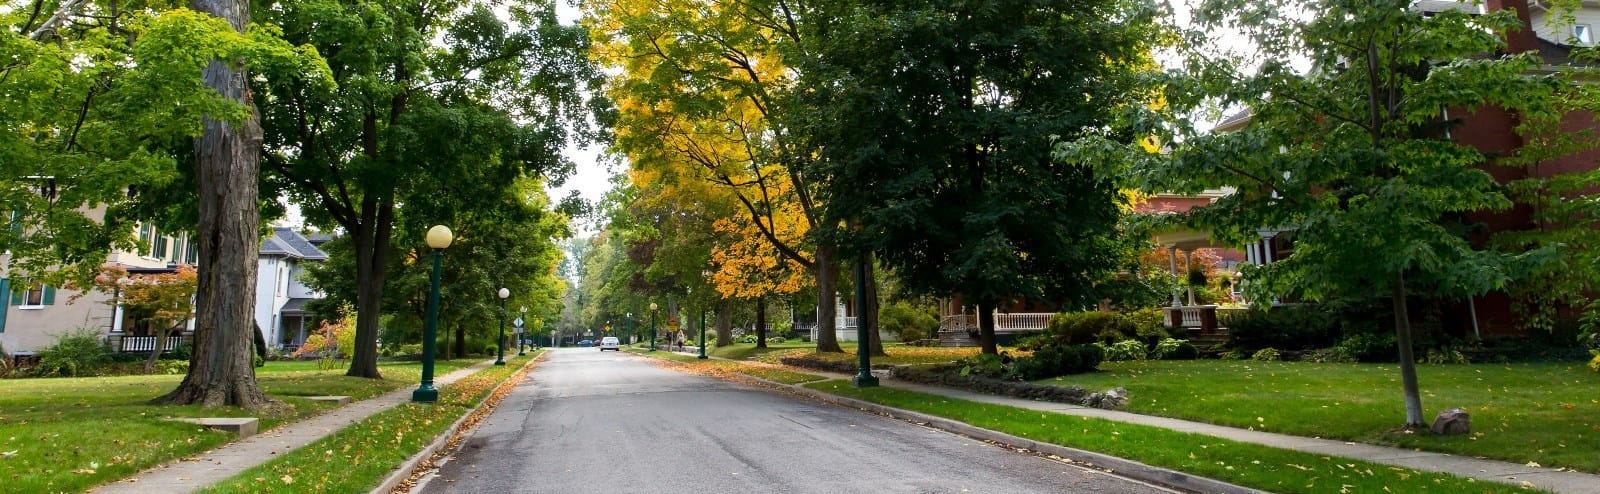 Tree-lined city street